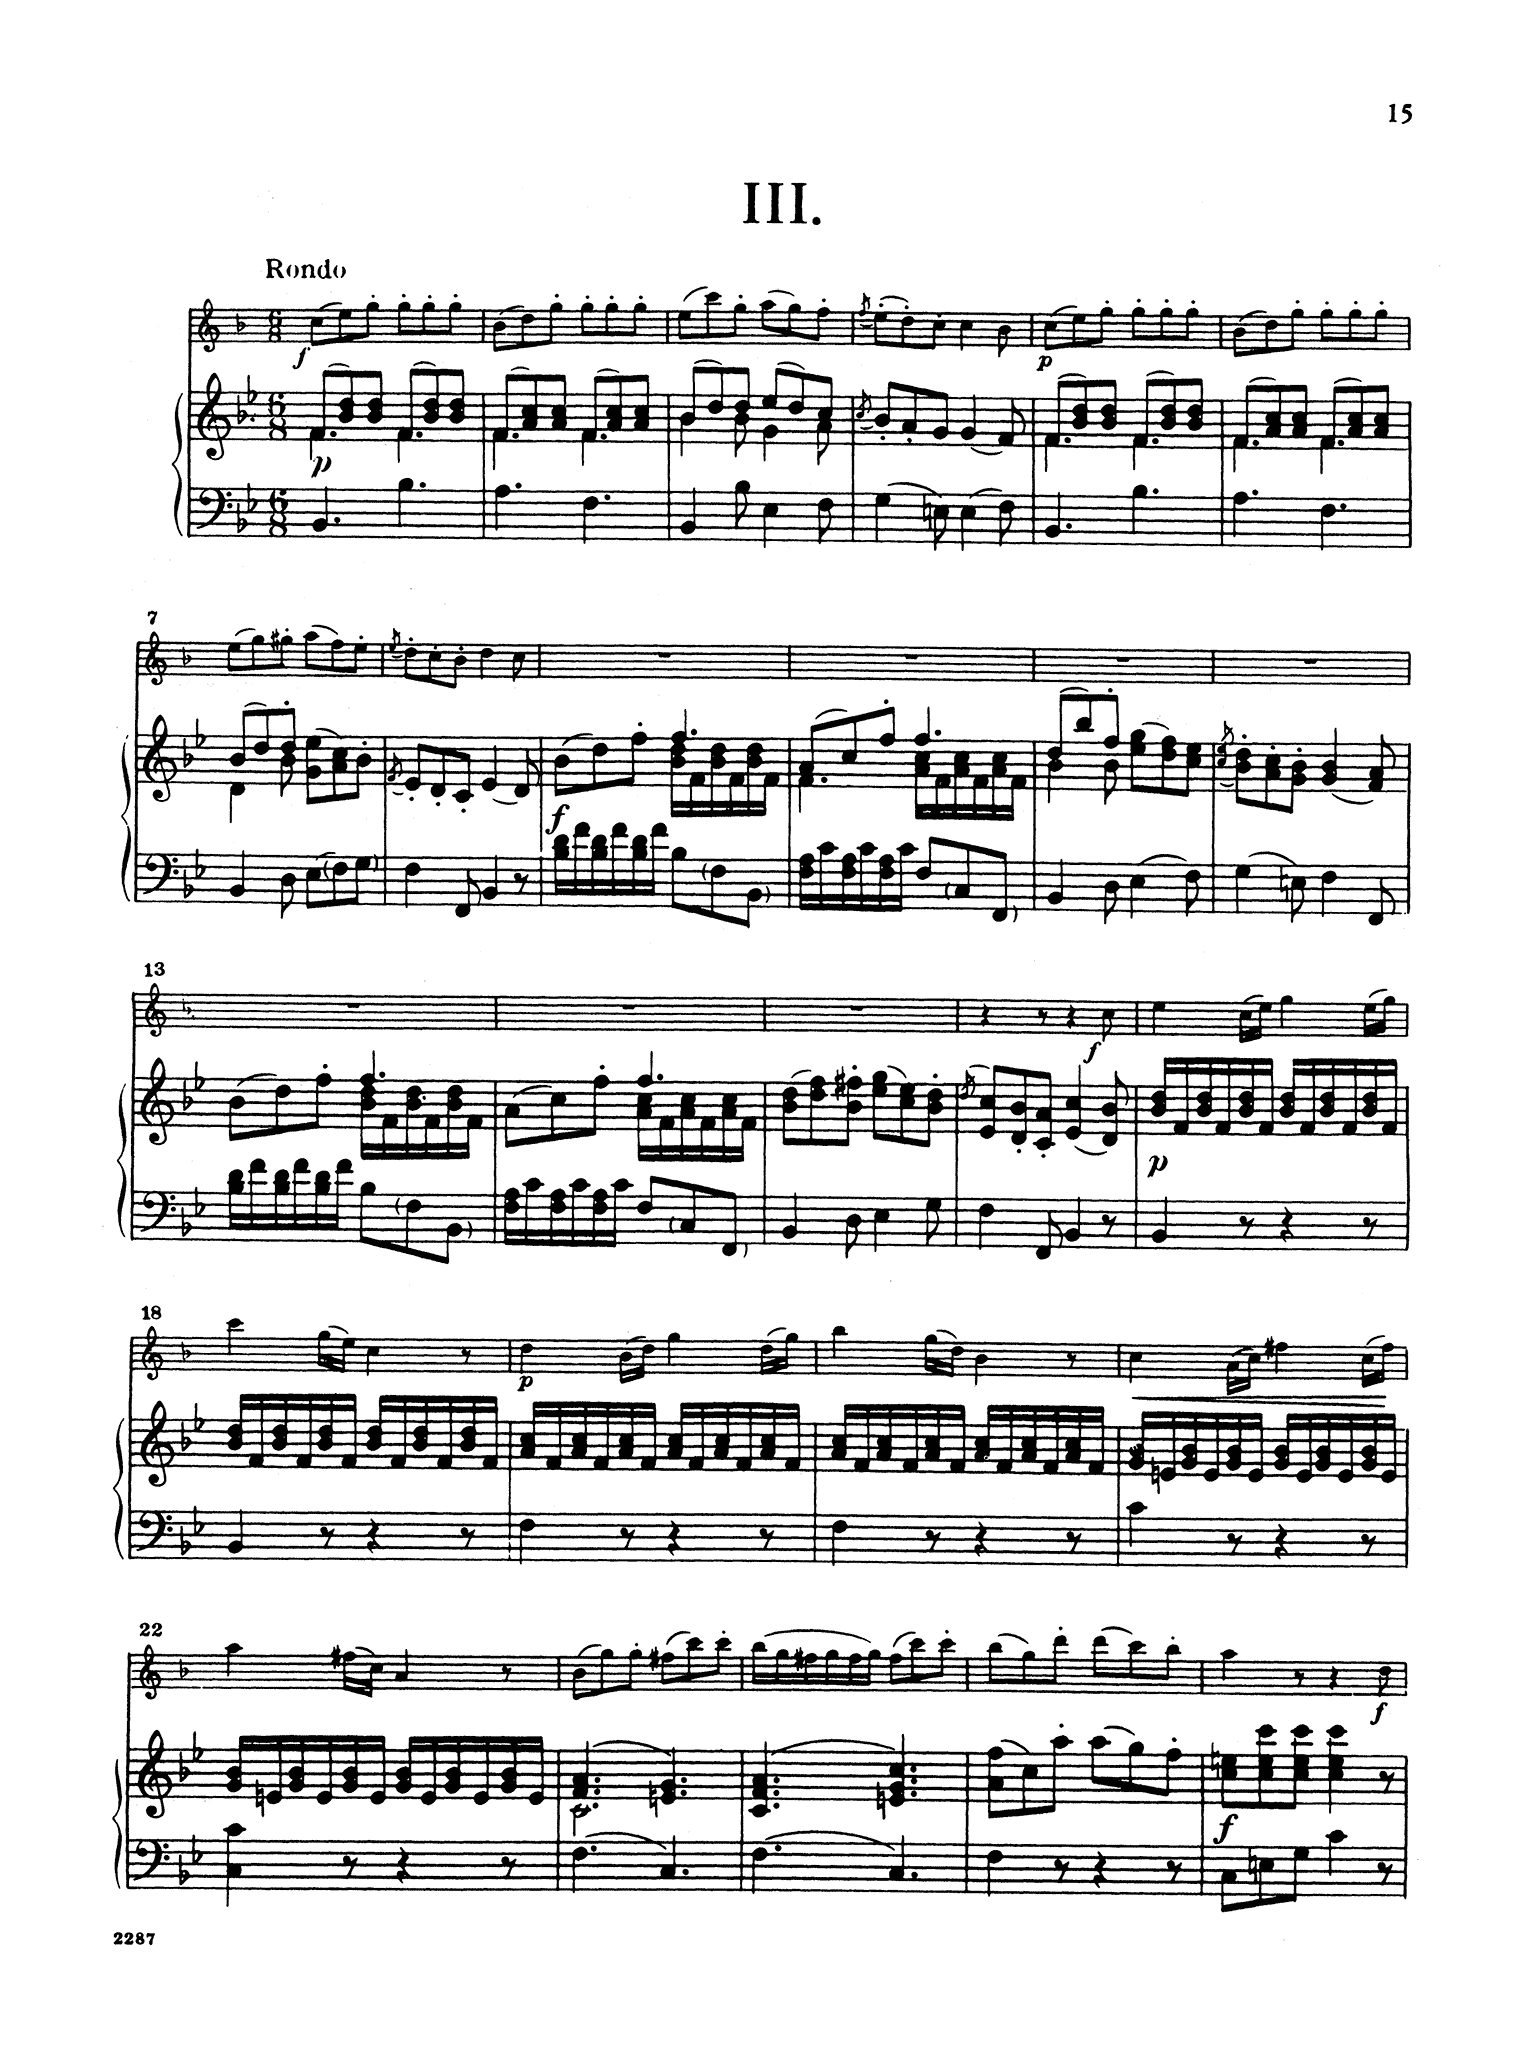 Clarinet Concerto No. 3 in B-flat Major - Movement 3